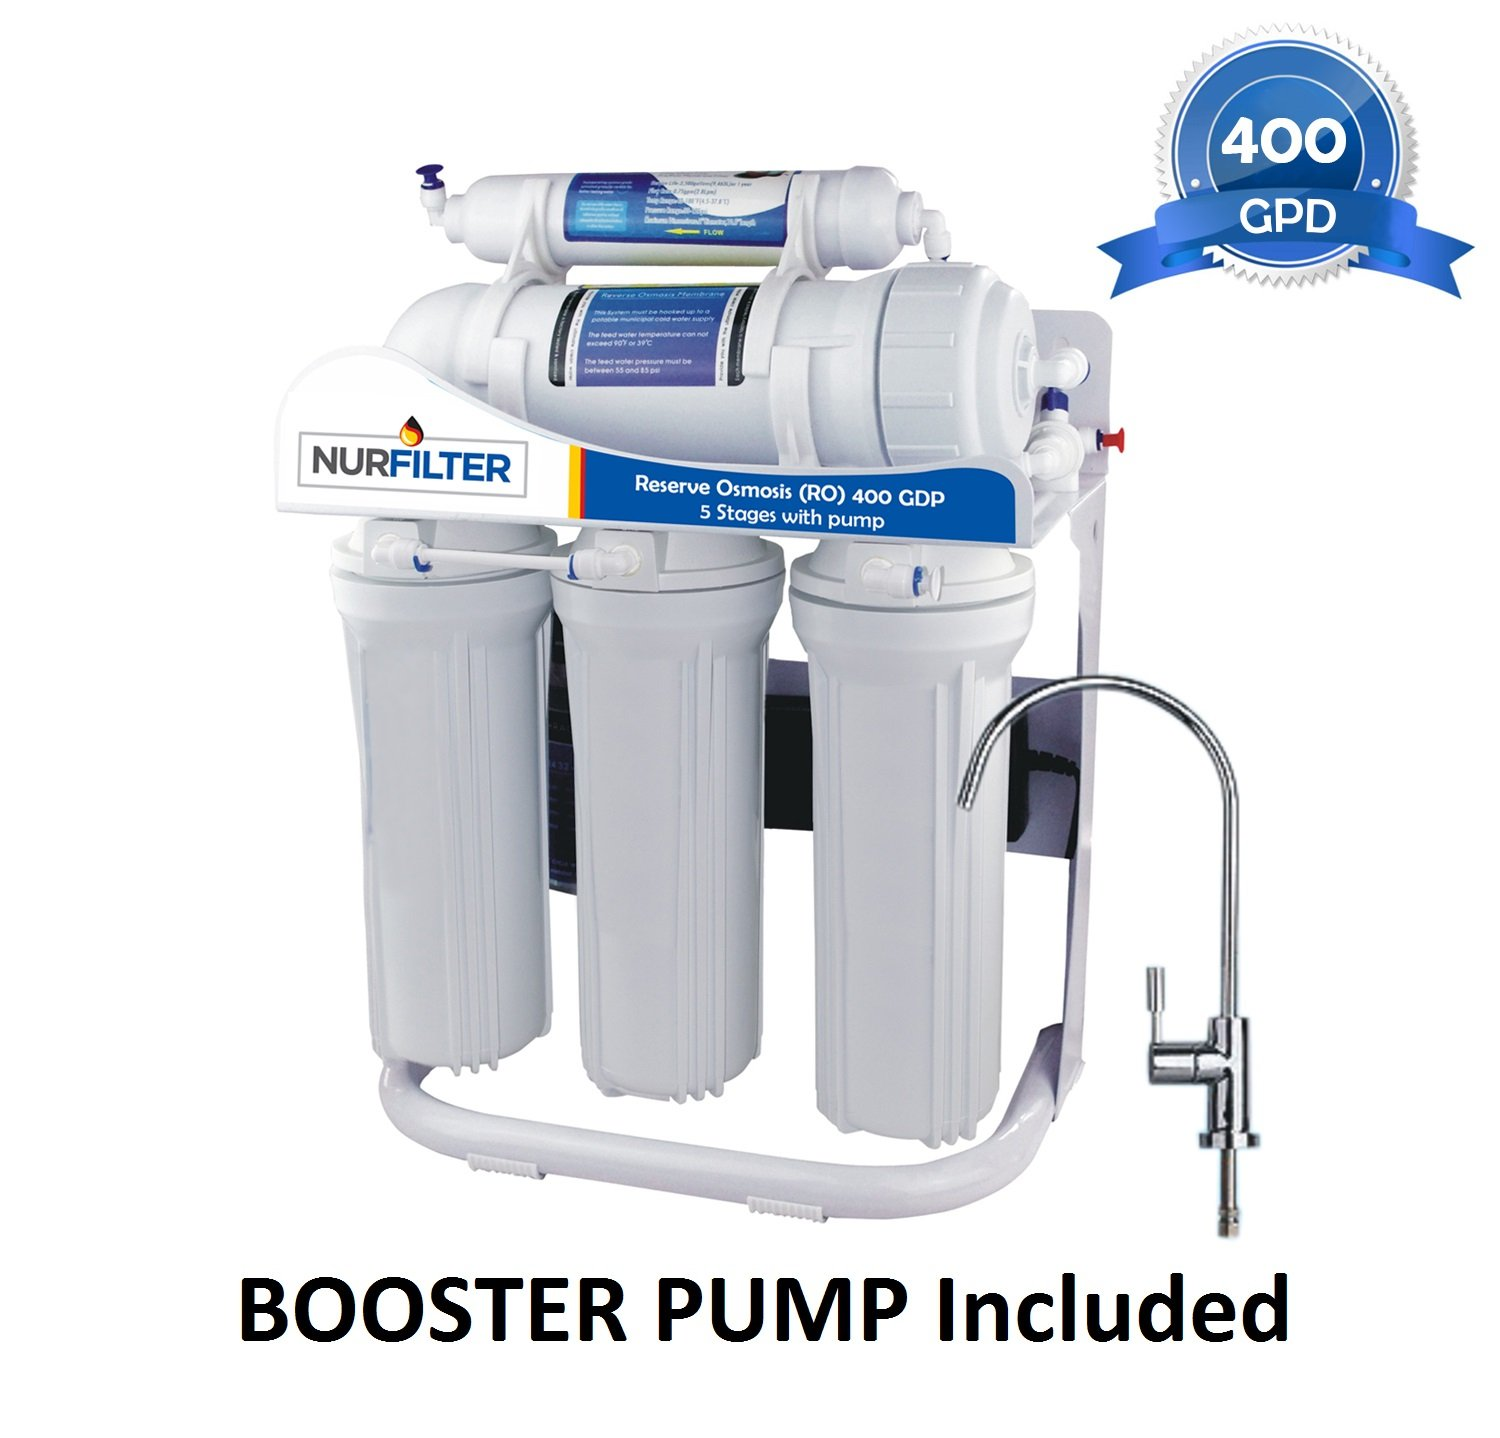 NURFILTER 400-gpd TANKLESS RO Reverse-Osmosis Drinking Water Filtration System 5 Stage and Booster Pump IDEAL in Low Pressure Home Commercial Grade Ultra Safe Filter Modern FDA Faucet Under Sink WQA